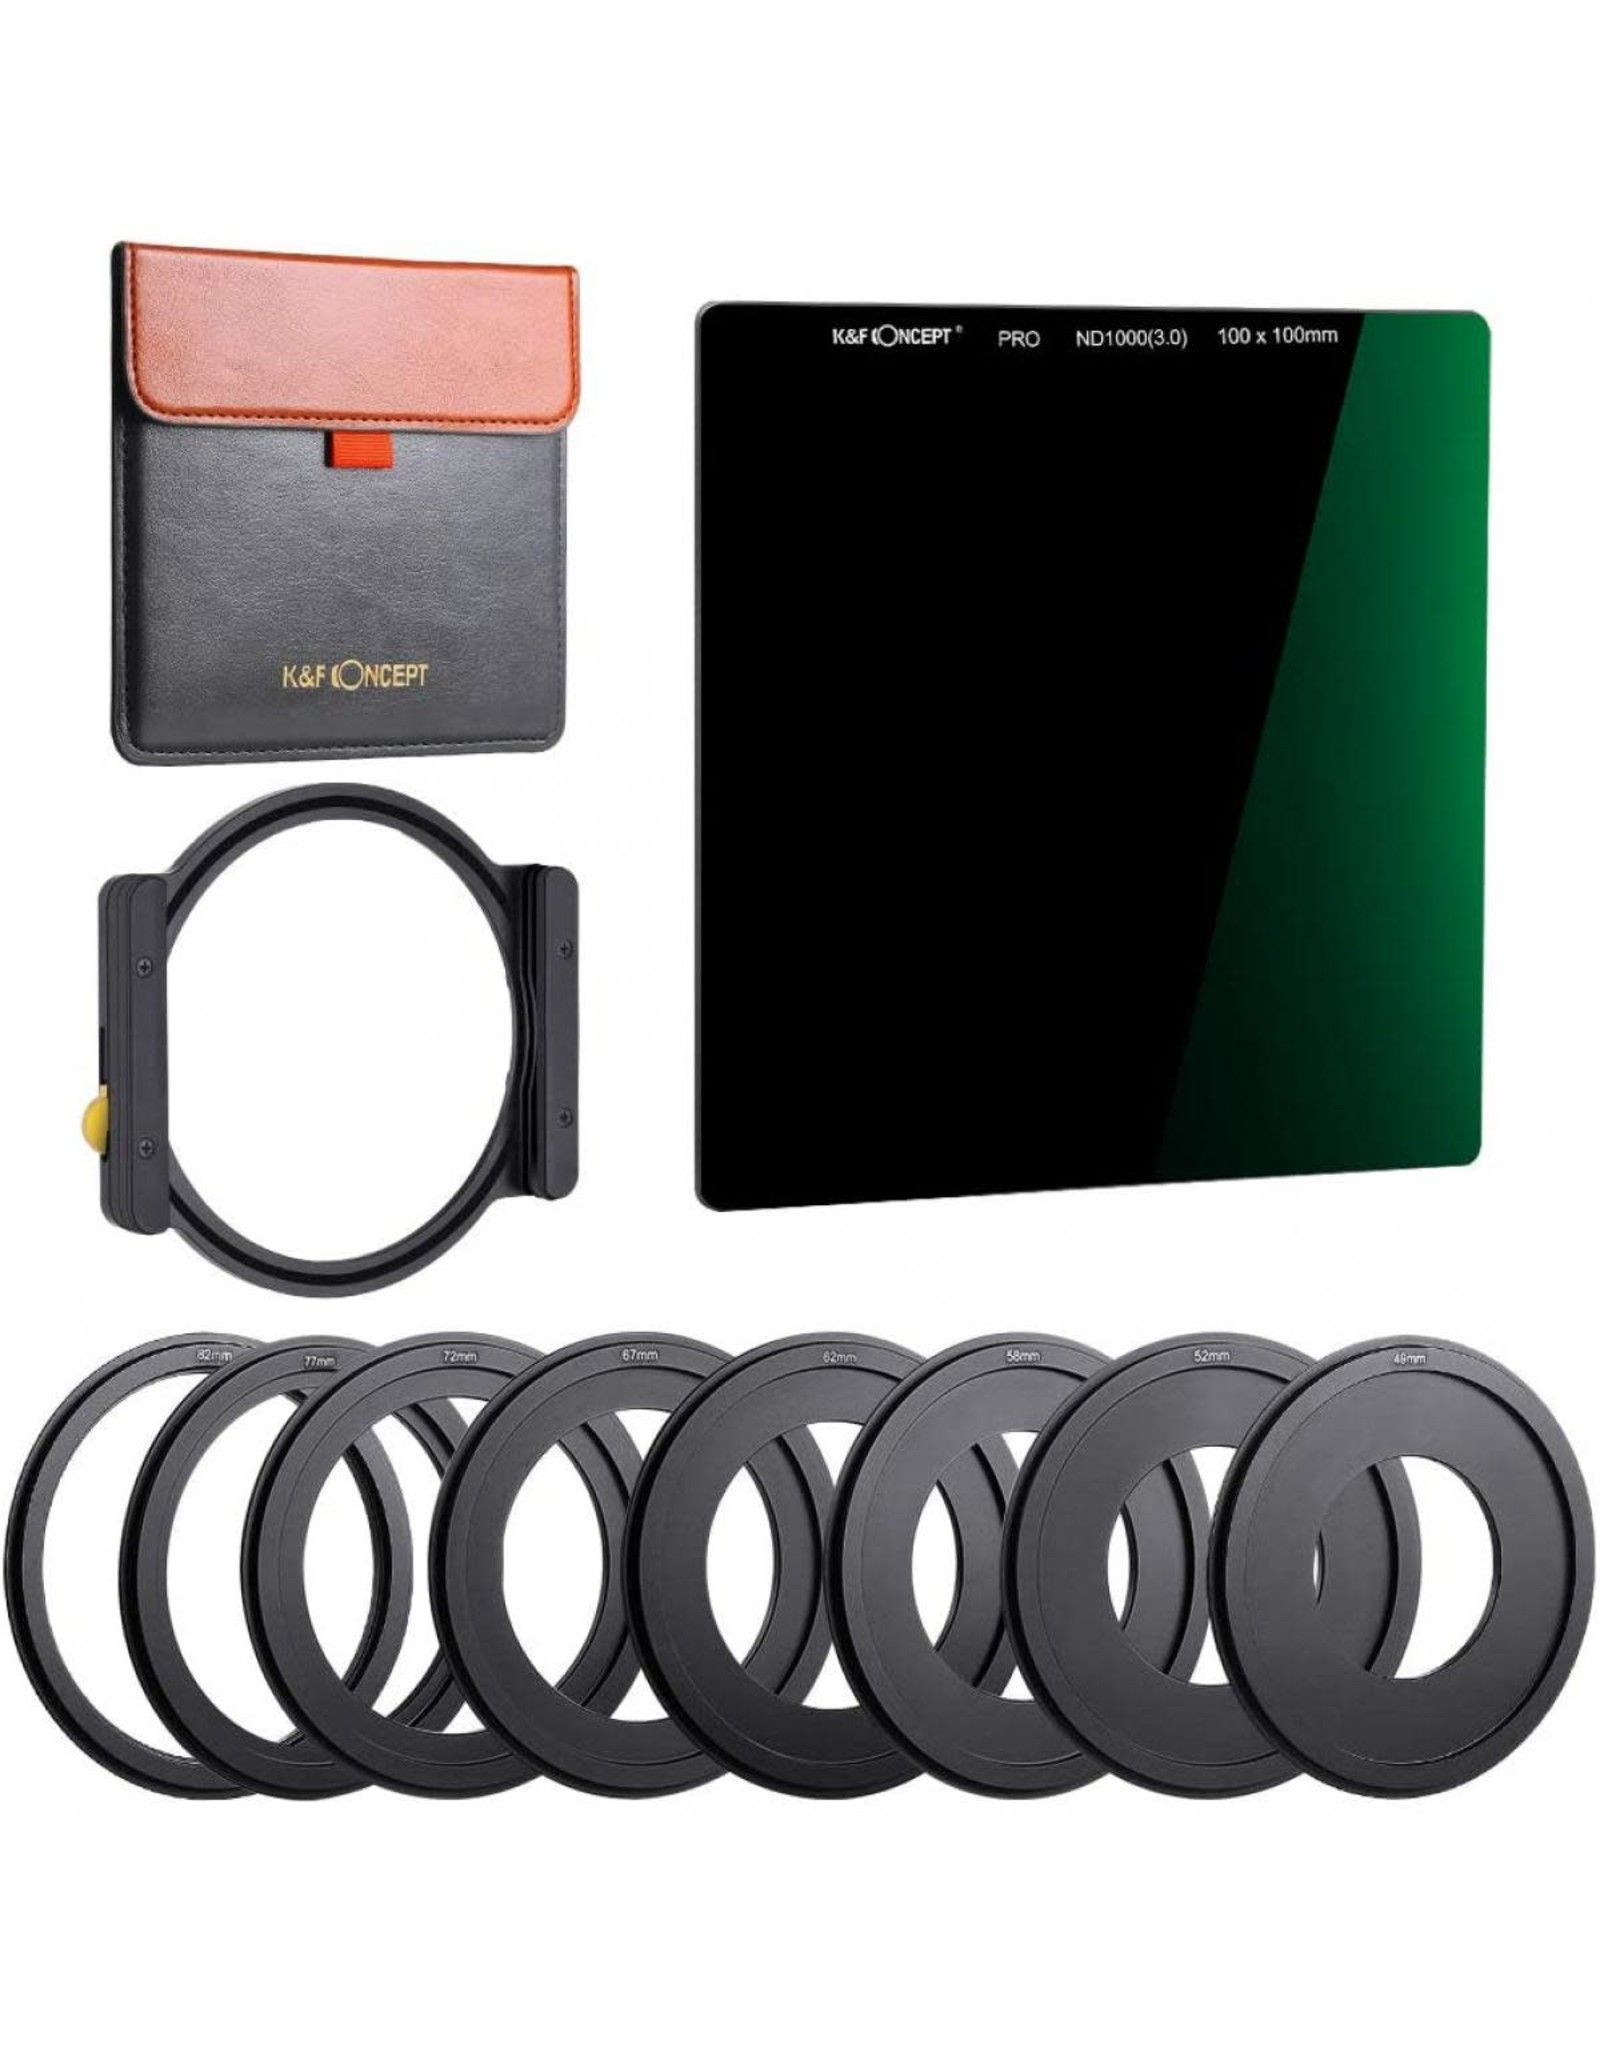 K&F K&F SN25T1 ND1000 Square Filter 100x100mm + Metal Holder, 8 Adapter Rings